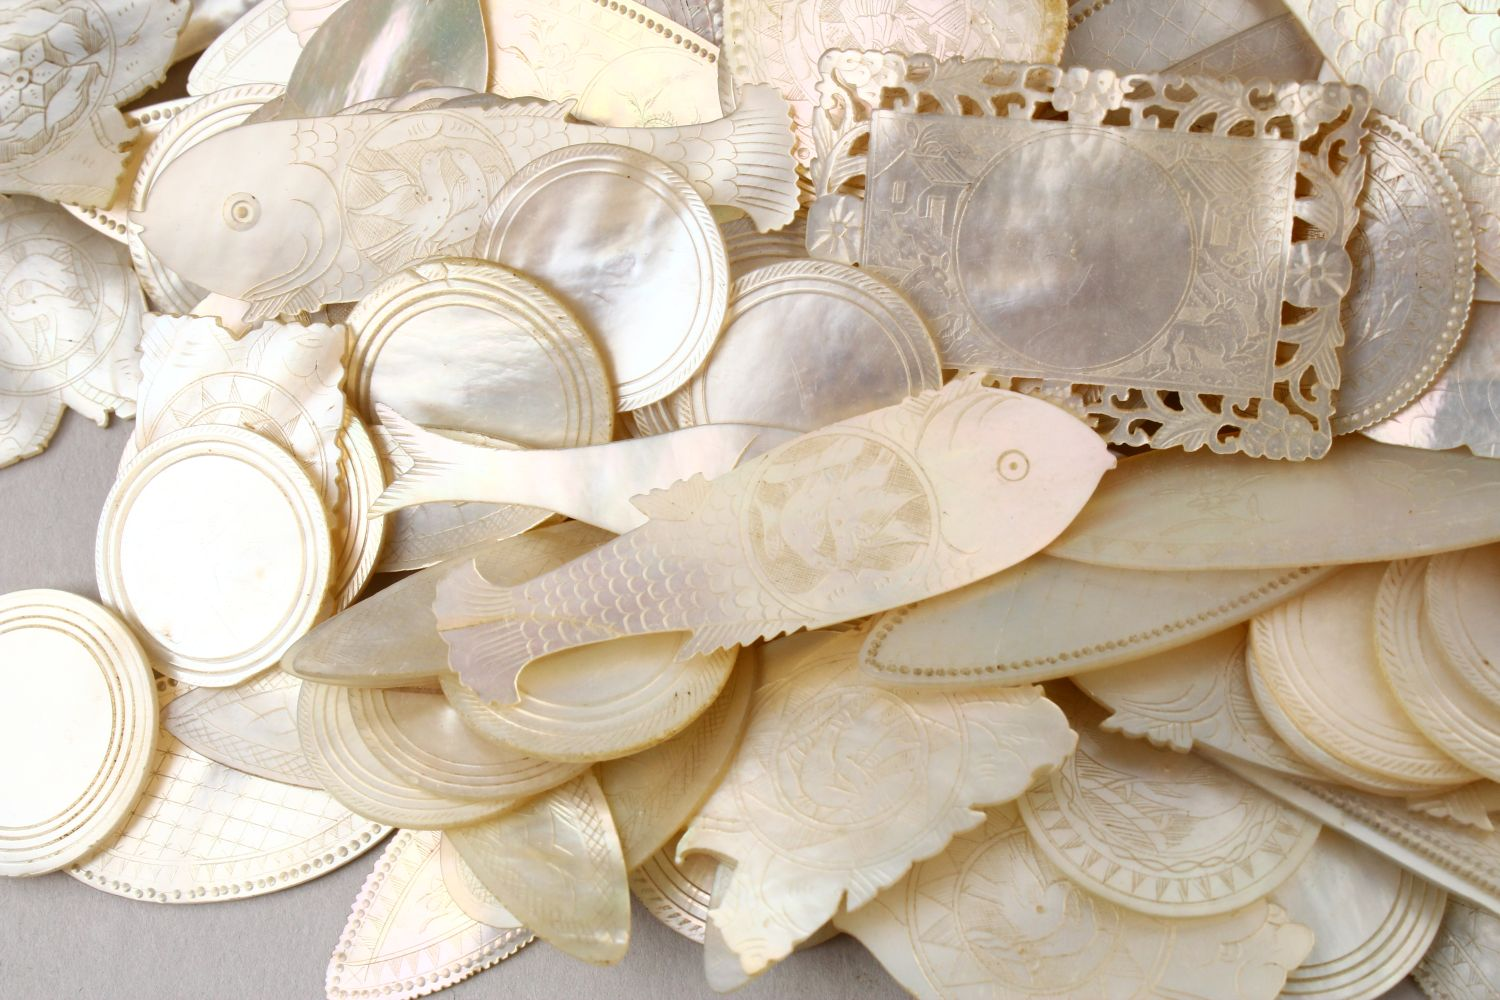 A QUANTITY OF 19TH CENTURY CHINESE CARVED MOTHER OF PEARL GAME COUNTERS, various styles an sizes. - Image 6 of 9